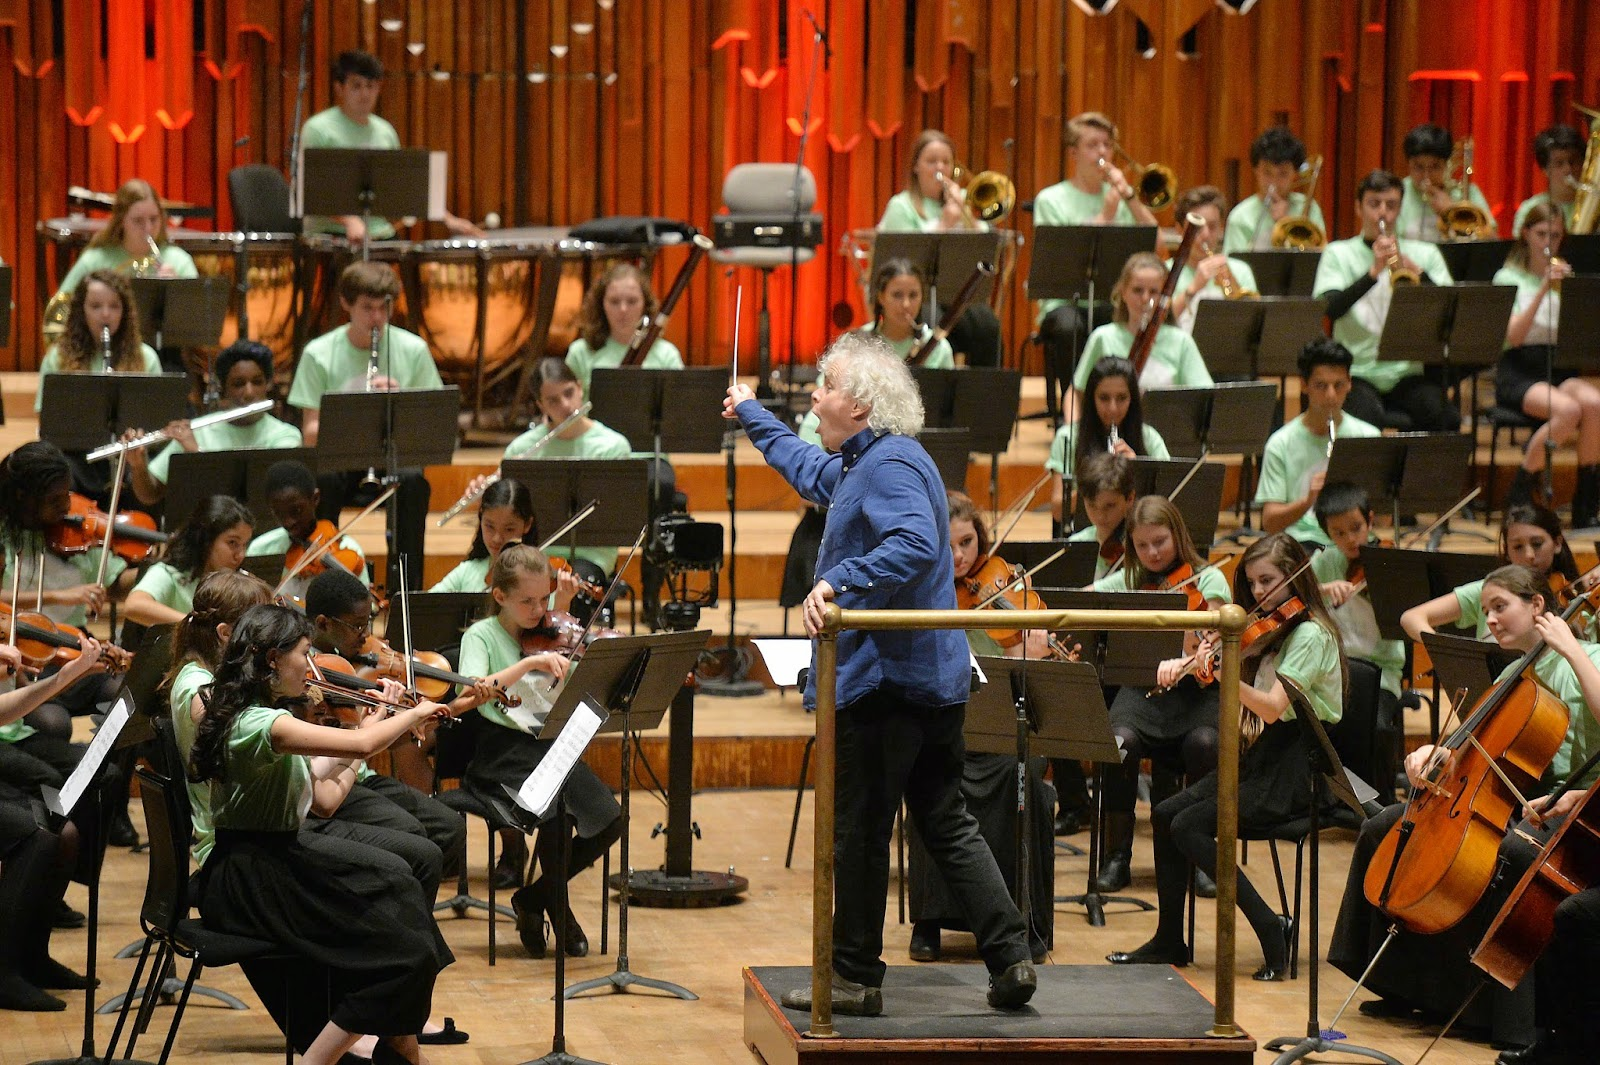 Sir Simon Rattle rehearsing with the Young Orchestra for London in the Barbican Hall as part of the Berliner Philharmoniker London Residency, 12 February 2015. Credit Mark Allen Barbican